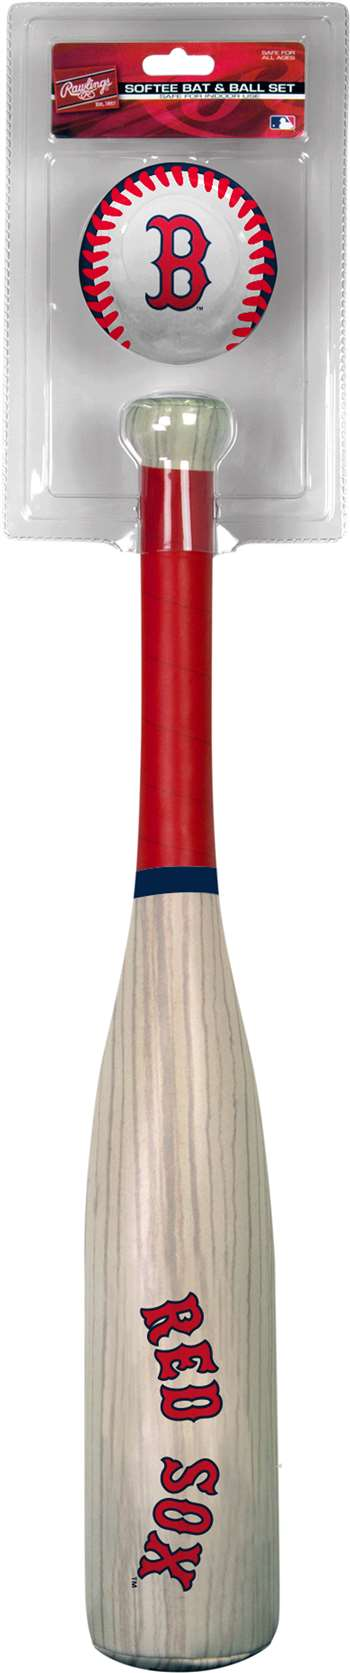 MLB Boston Red Sox Grand Slam Softee Baseball Bat and Ball Set (Wood Grain)